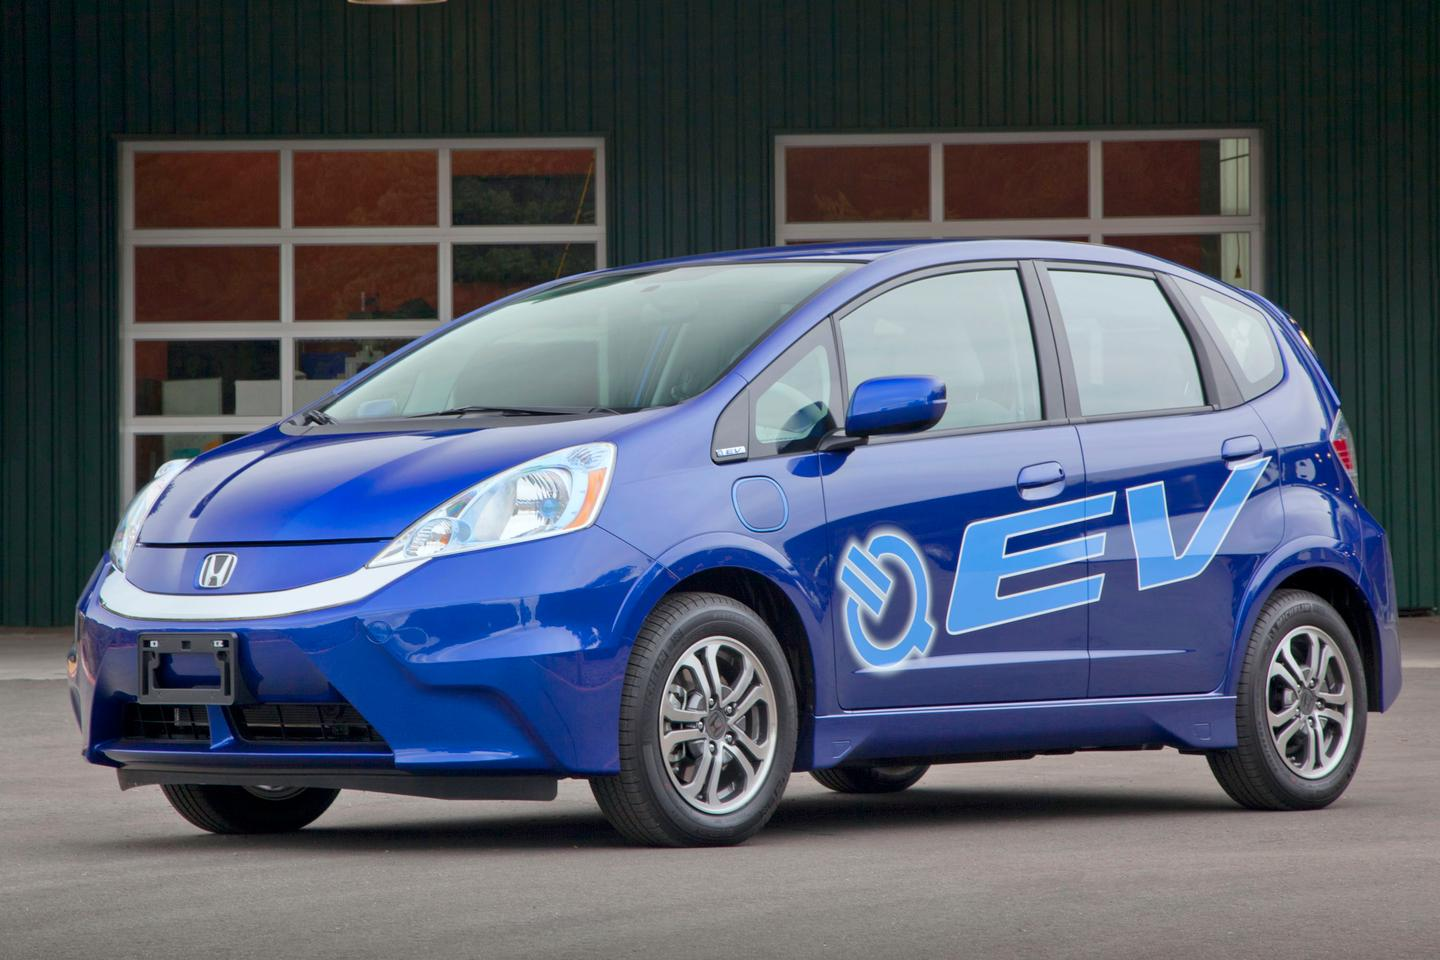 Honda has unveiled an ambitious new electrification strategy